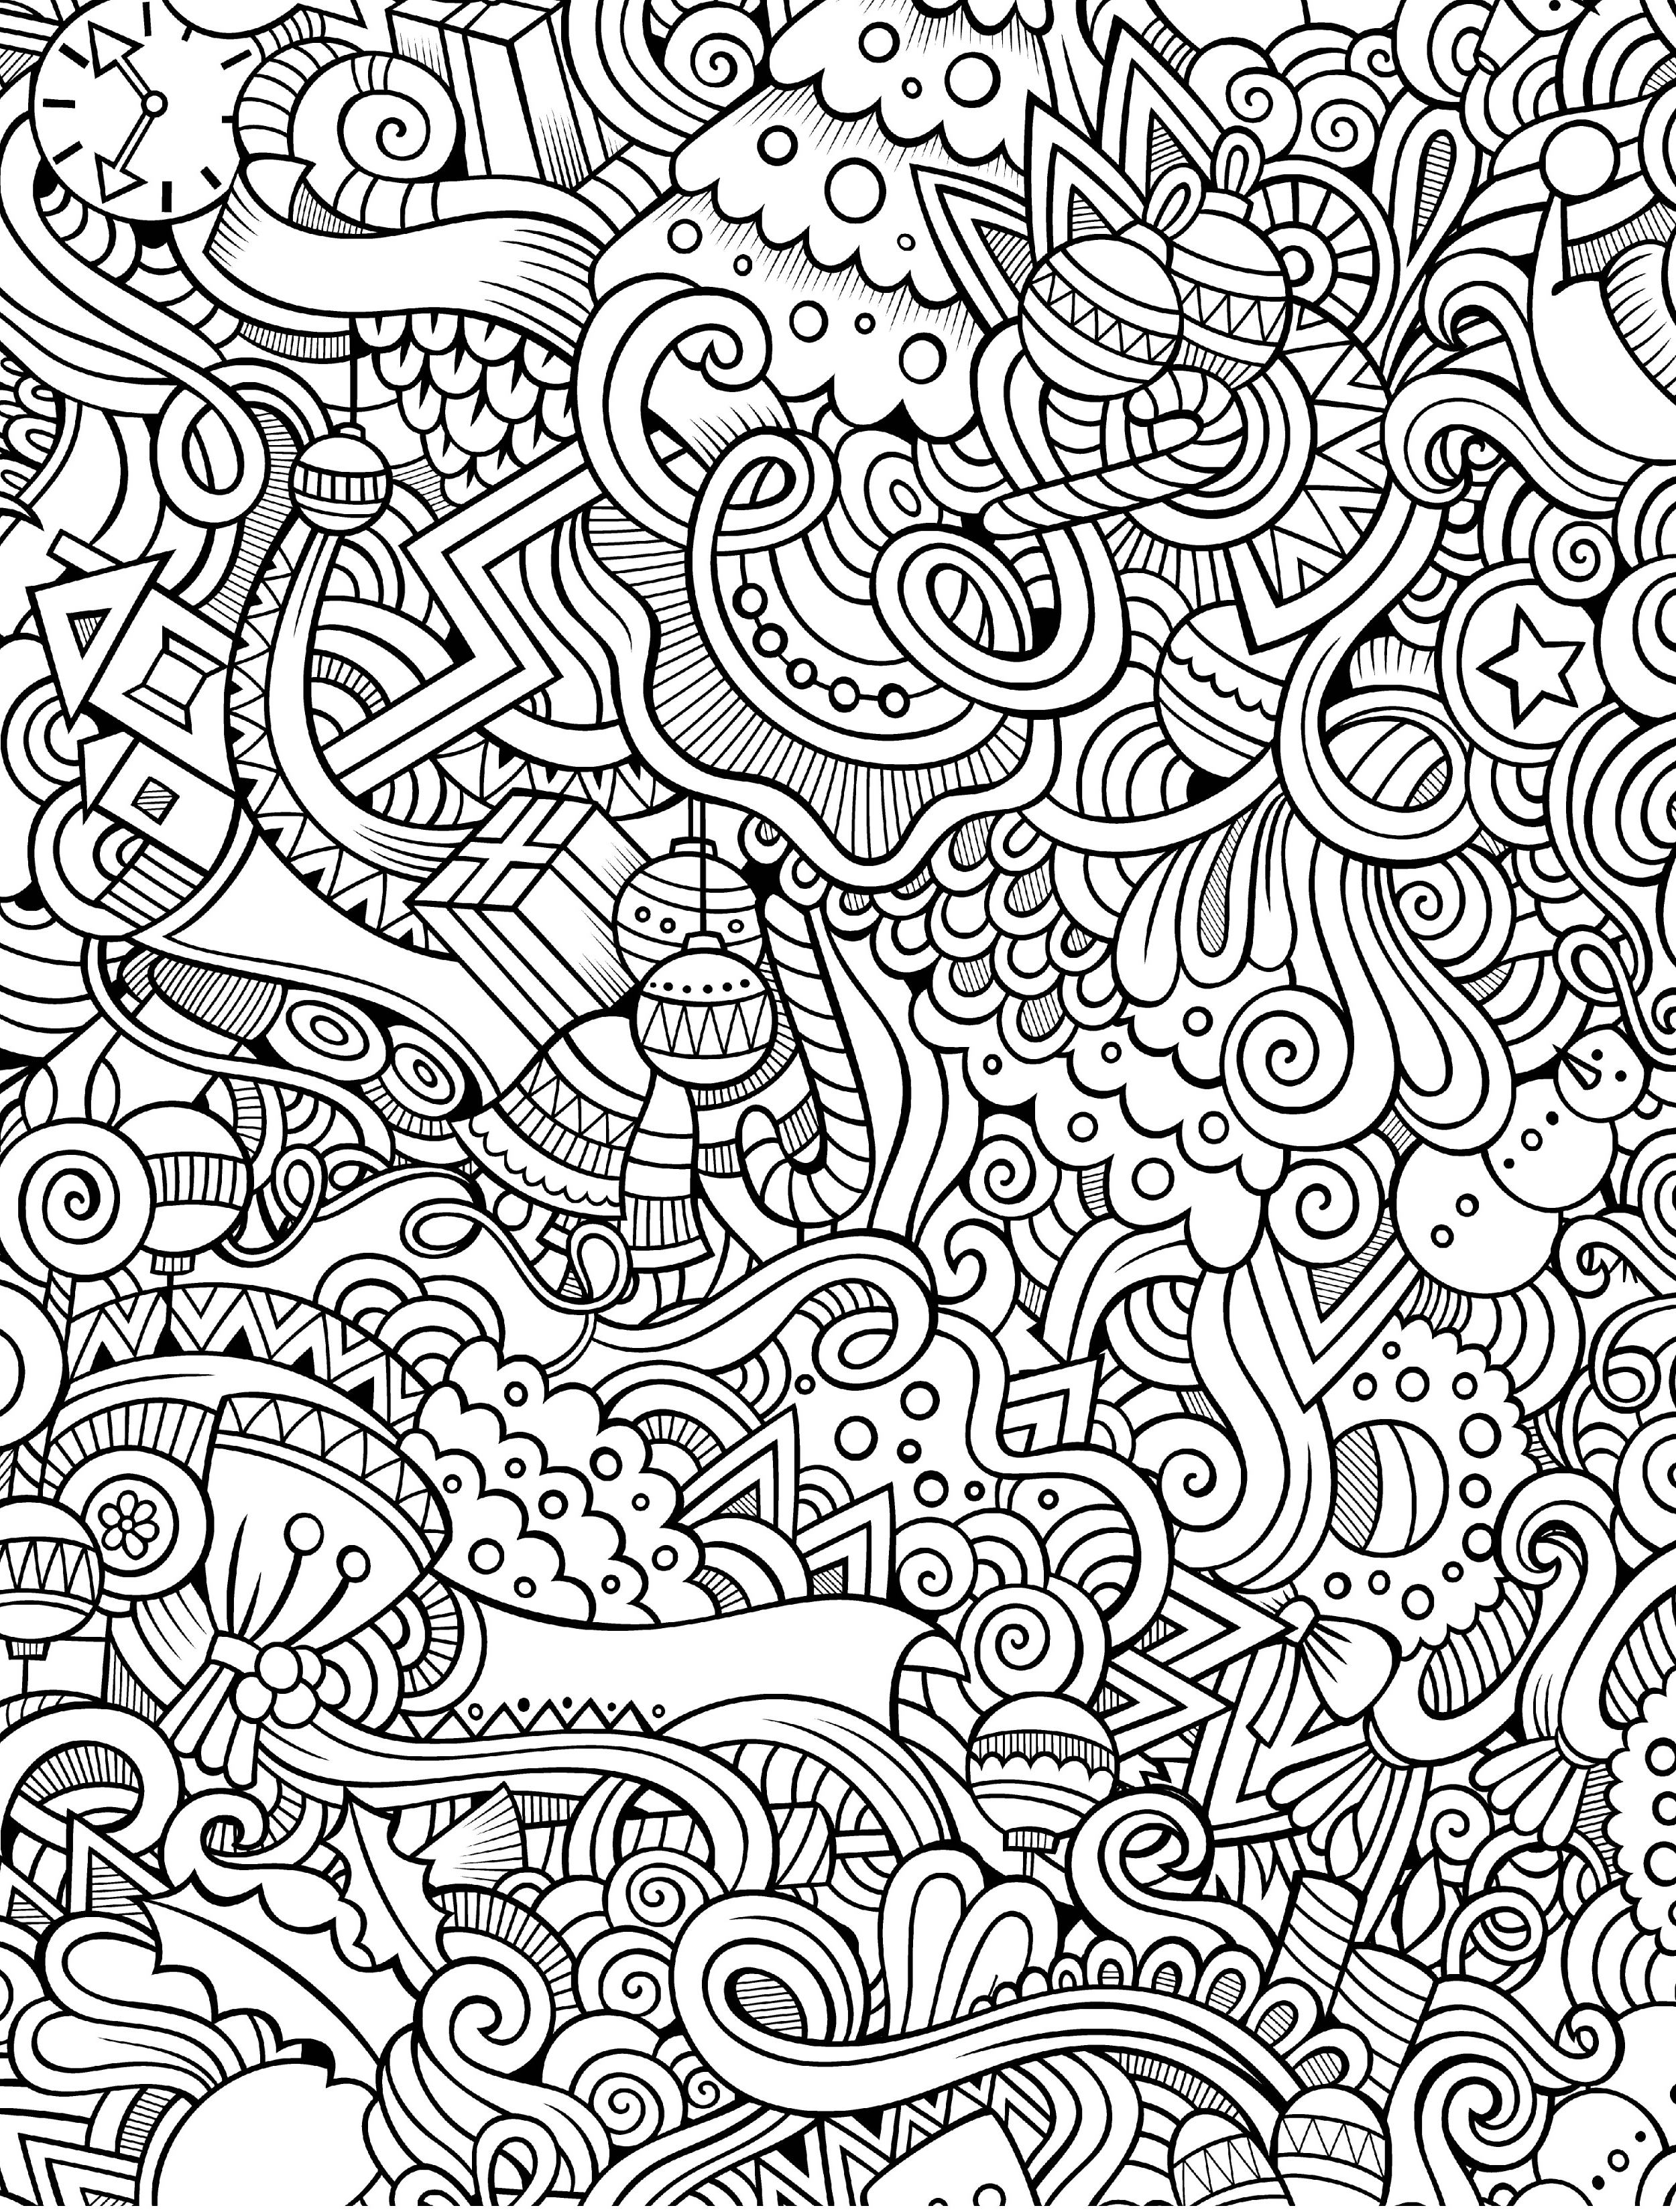 Free Adult Coloring Pages Free Adult Coloring Pages To Print Xflt 10 Free Printable Holiday